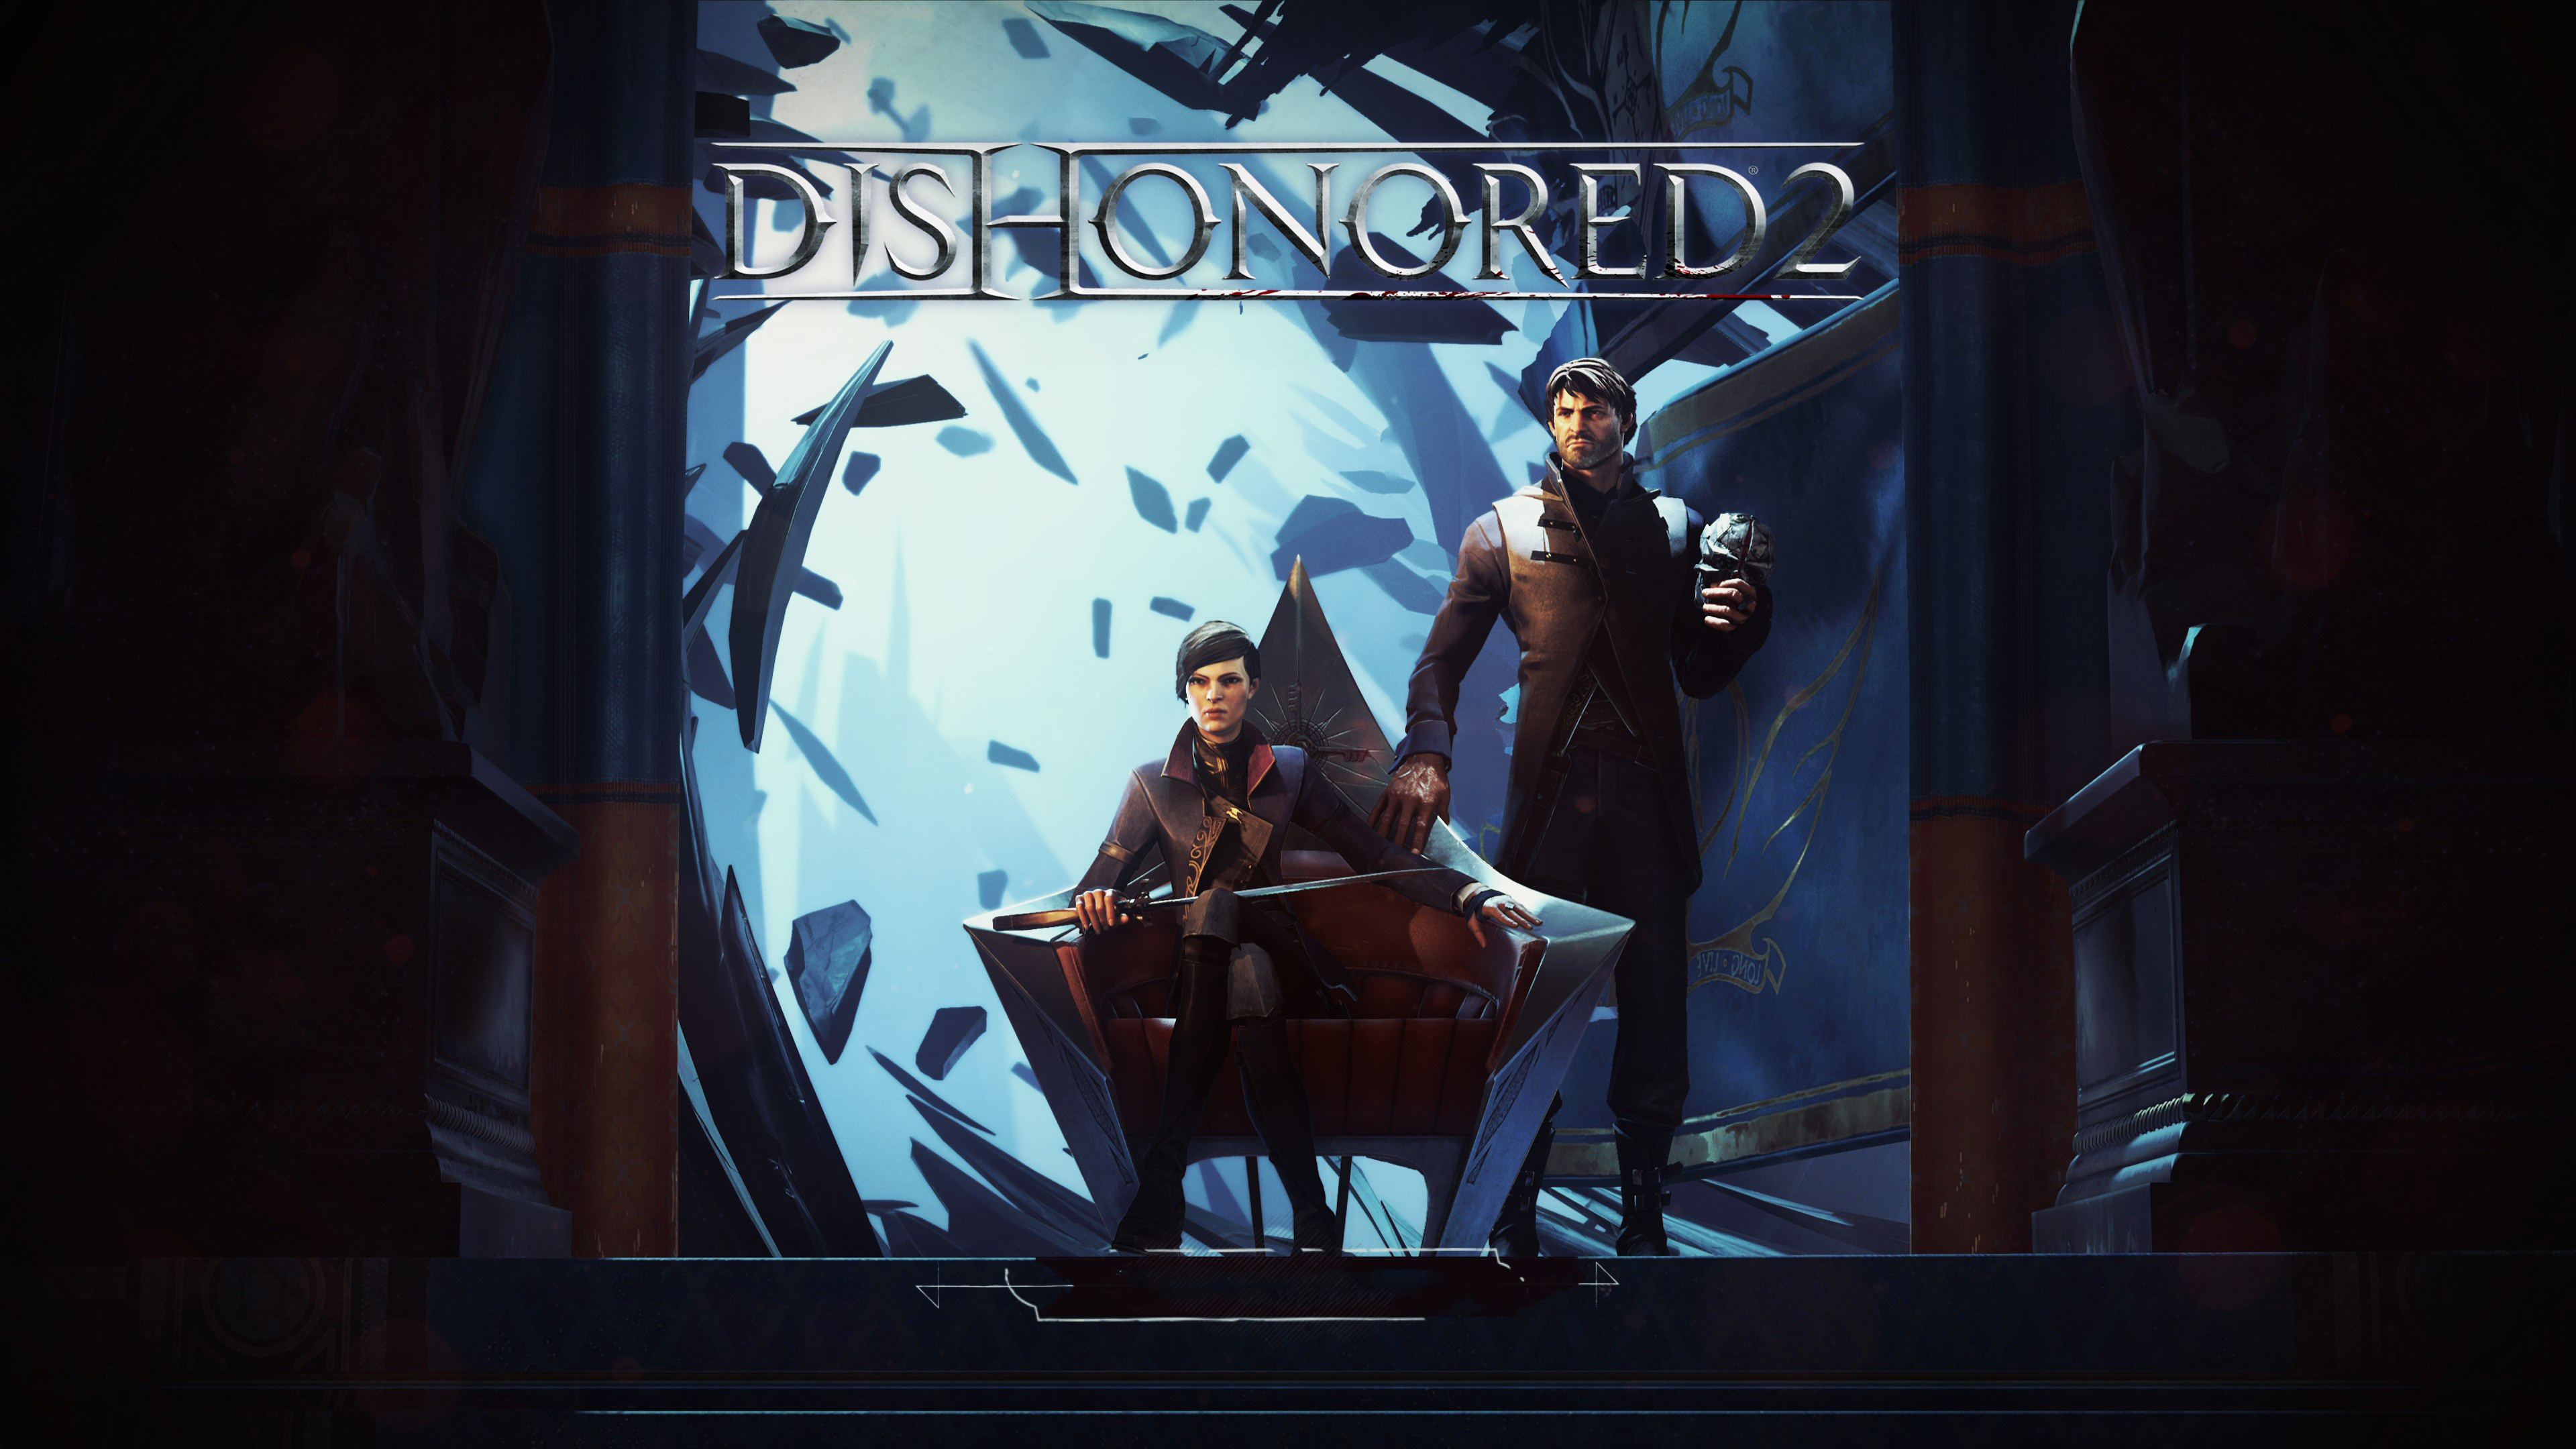 Dishonored 2 4k Ultra Hd Wallpaper Background Image 3840x2160 Id 1079443 Wallpaper Abyss